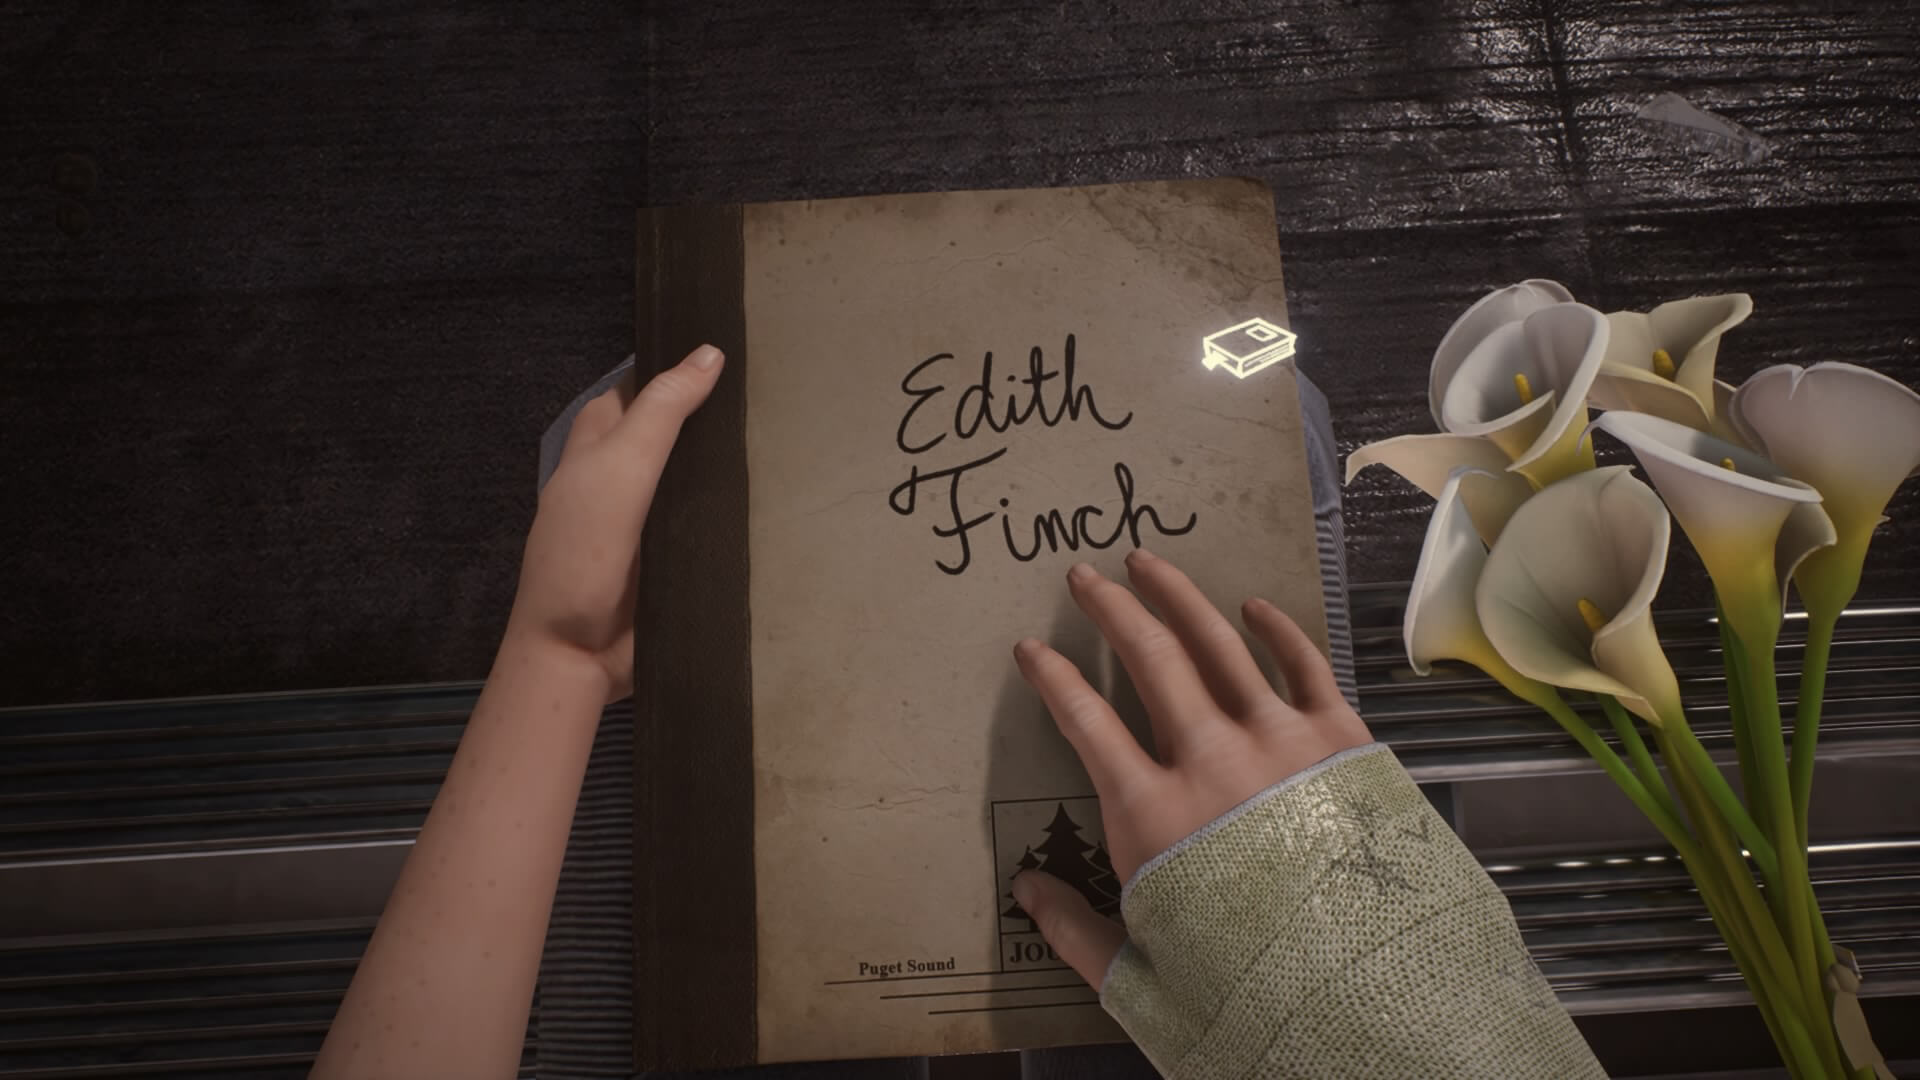 What Remains of Edith Finch is the Closest We're Going to Get to Gone Home 2